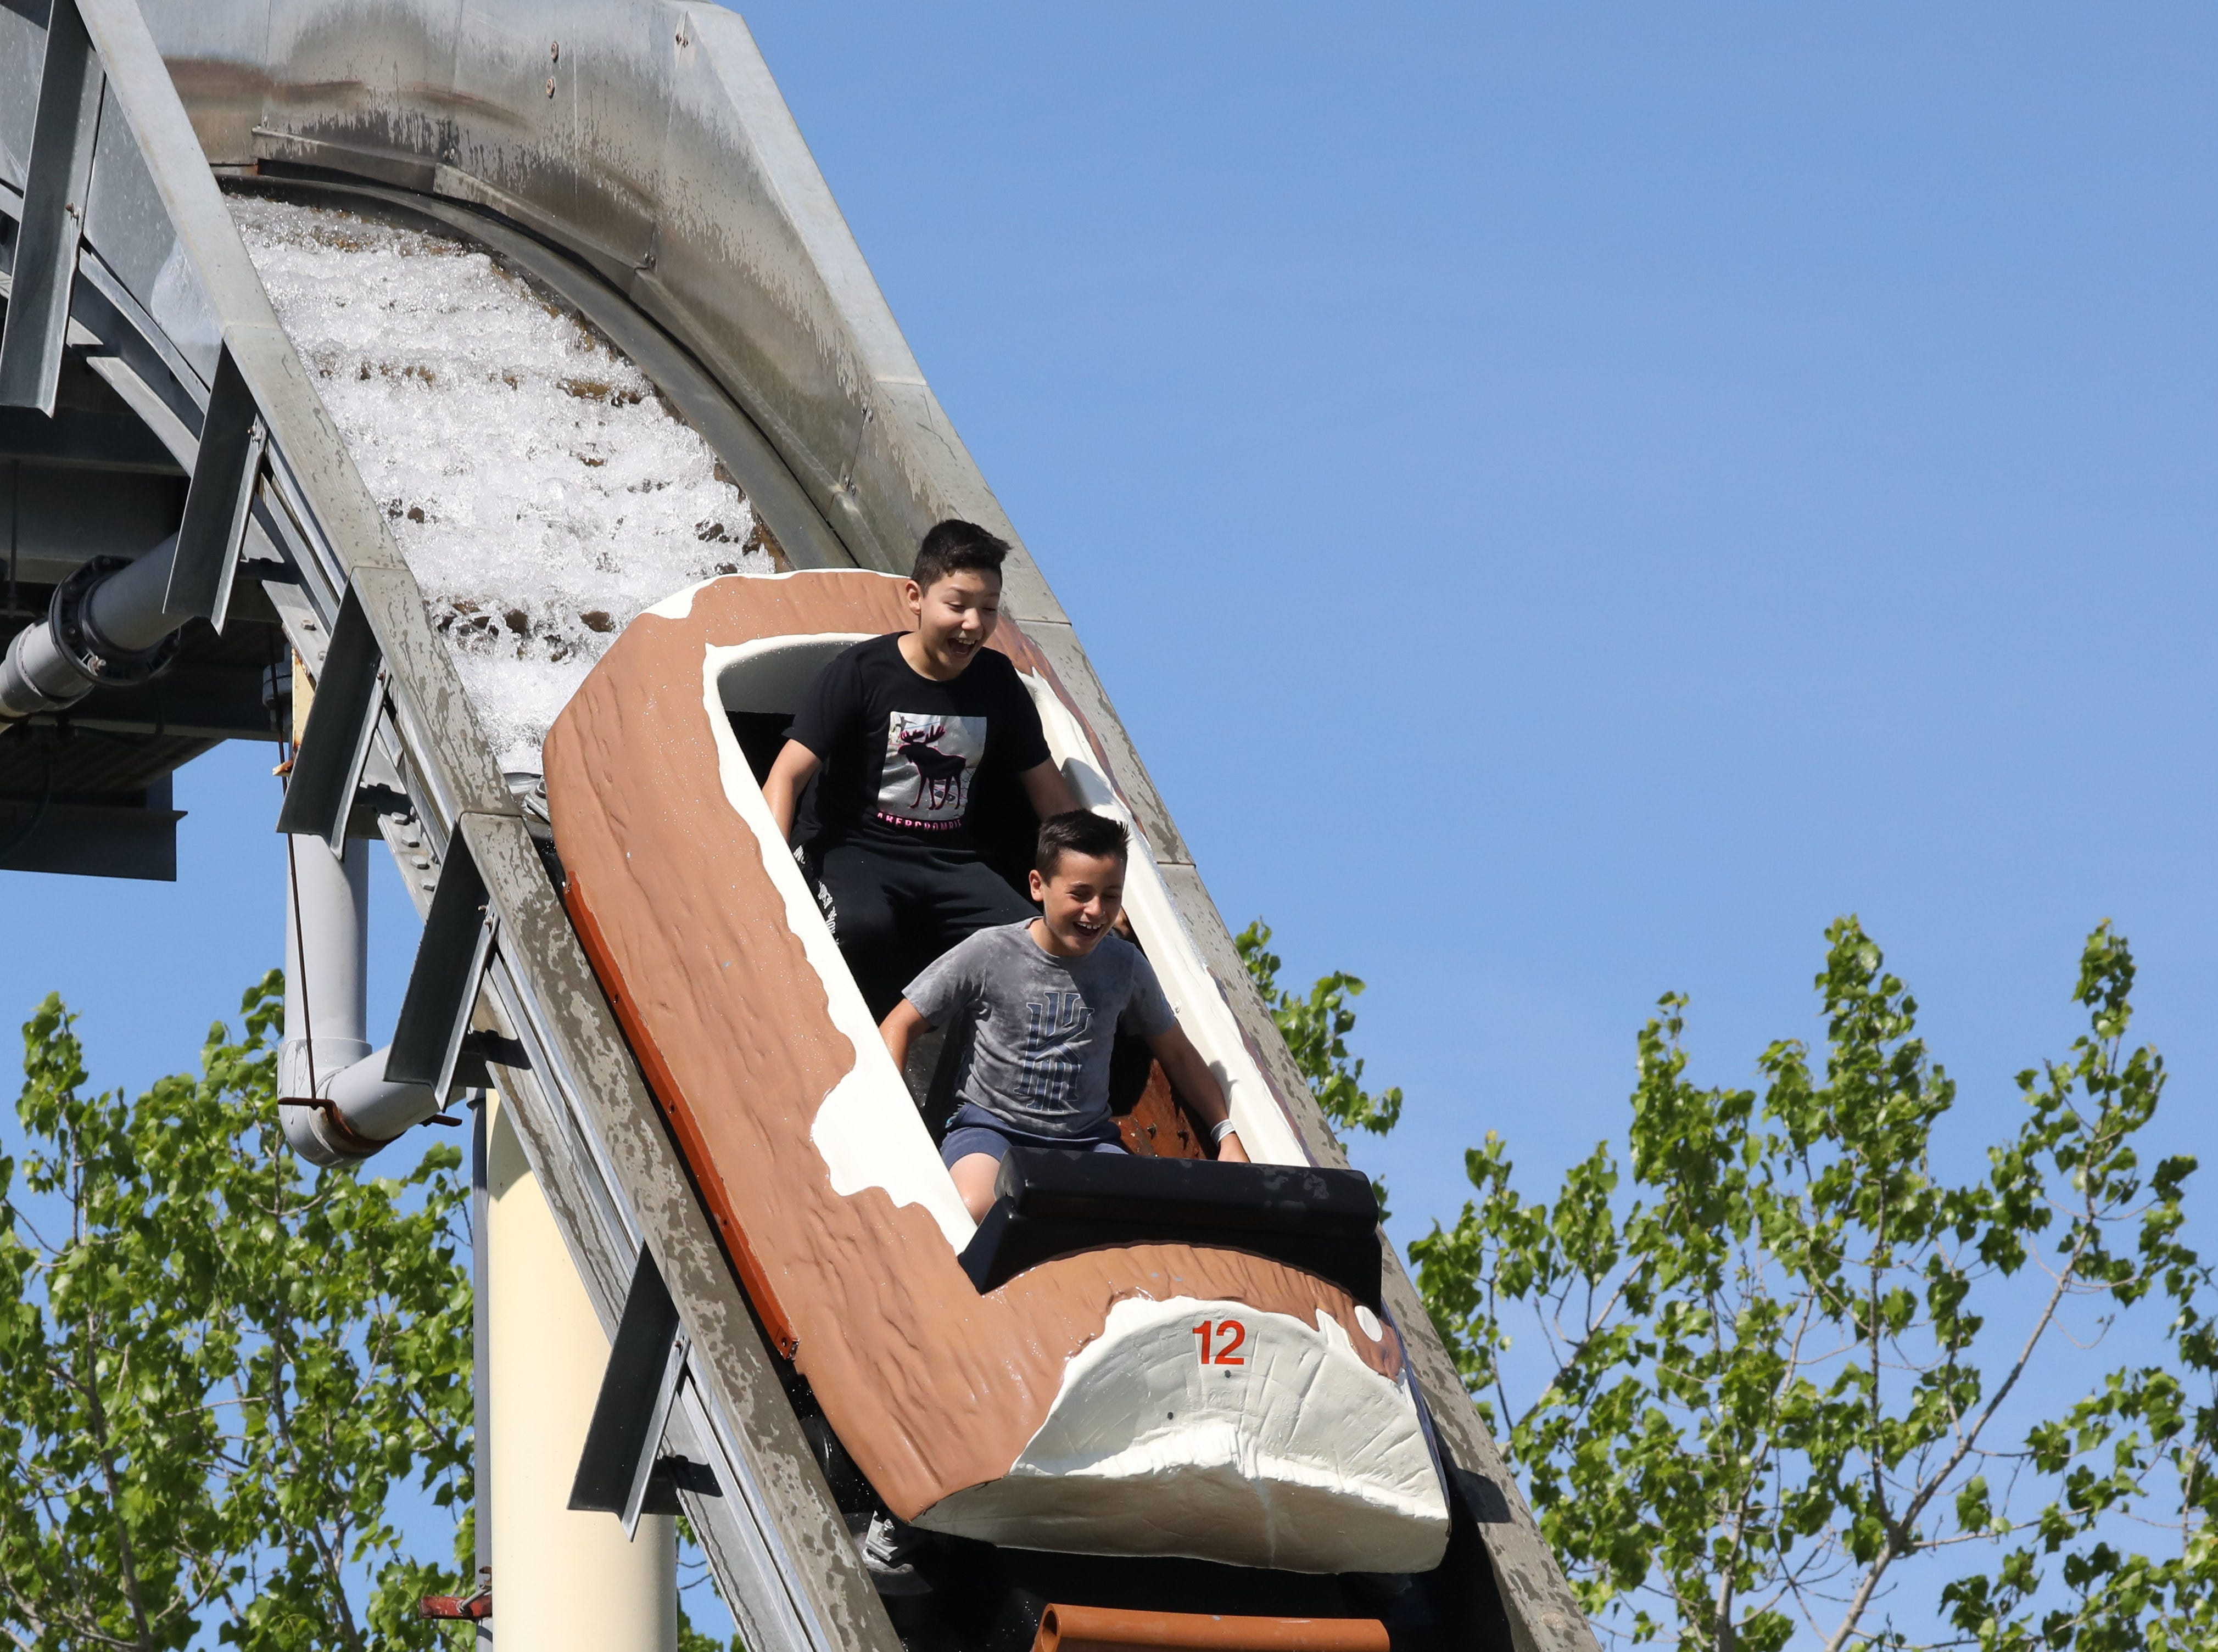 Children enjoy the Log Flume during opening day at Playland in Rye, May 11, 2019.